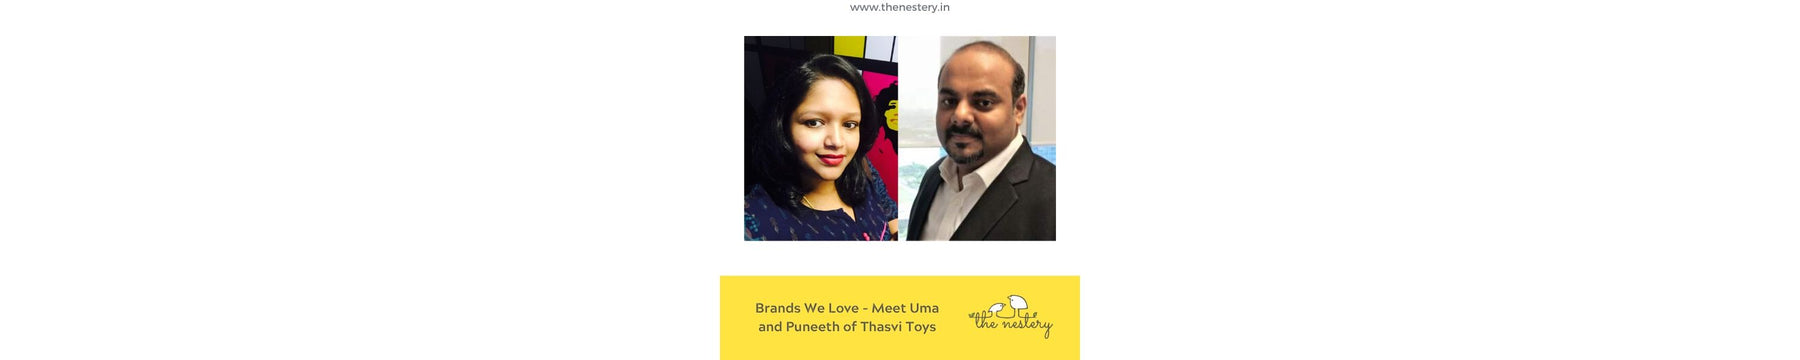 Brands We Love - Meet Uma and Puneeth of Thasvi Toys